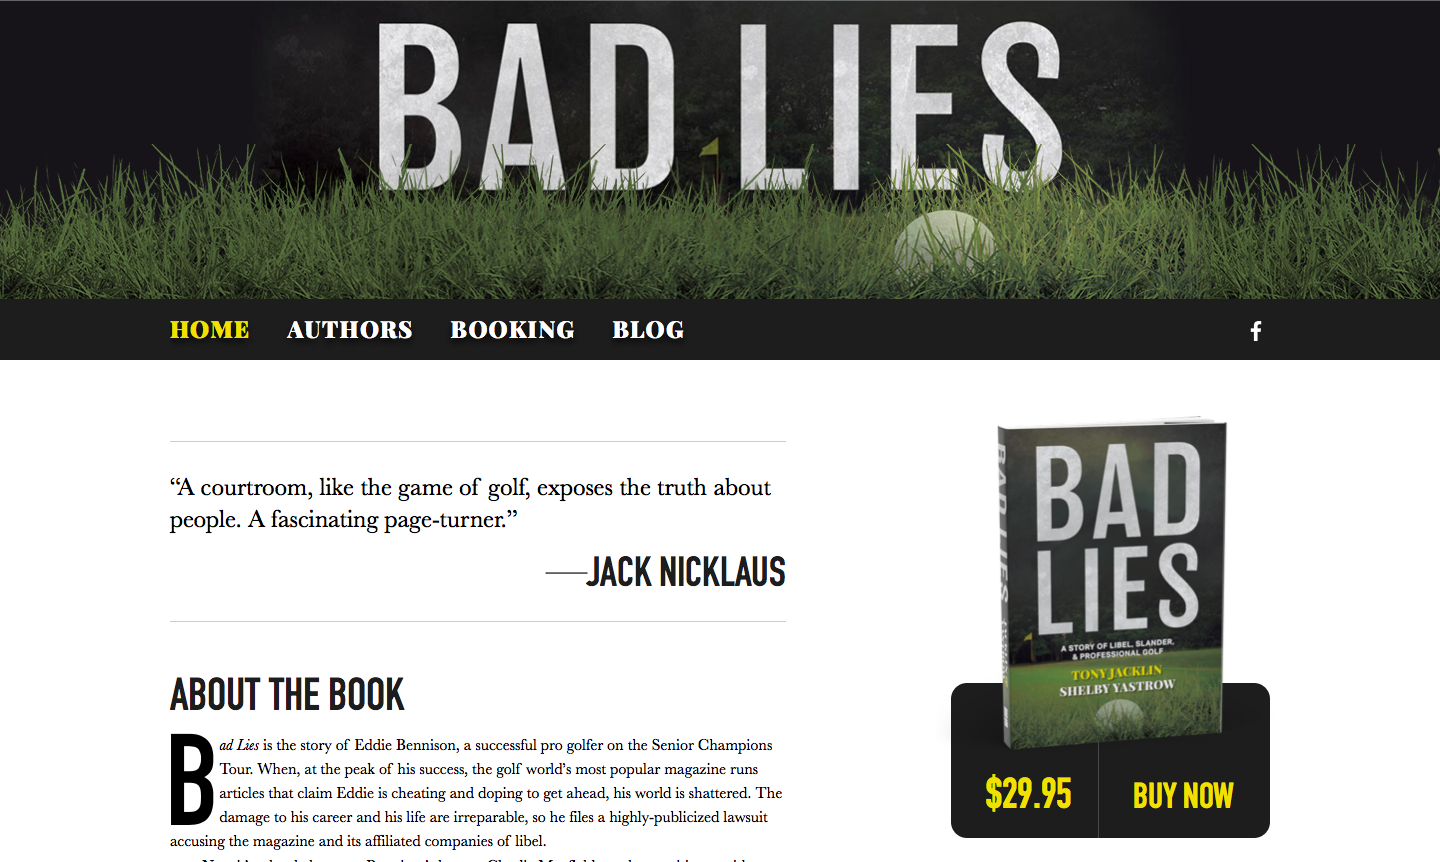 Bad Lies website screenshot